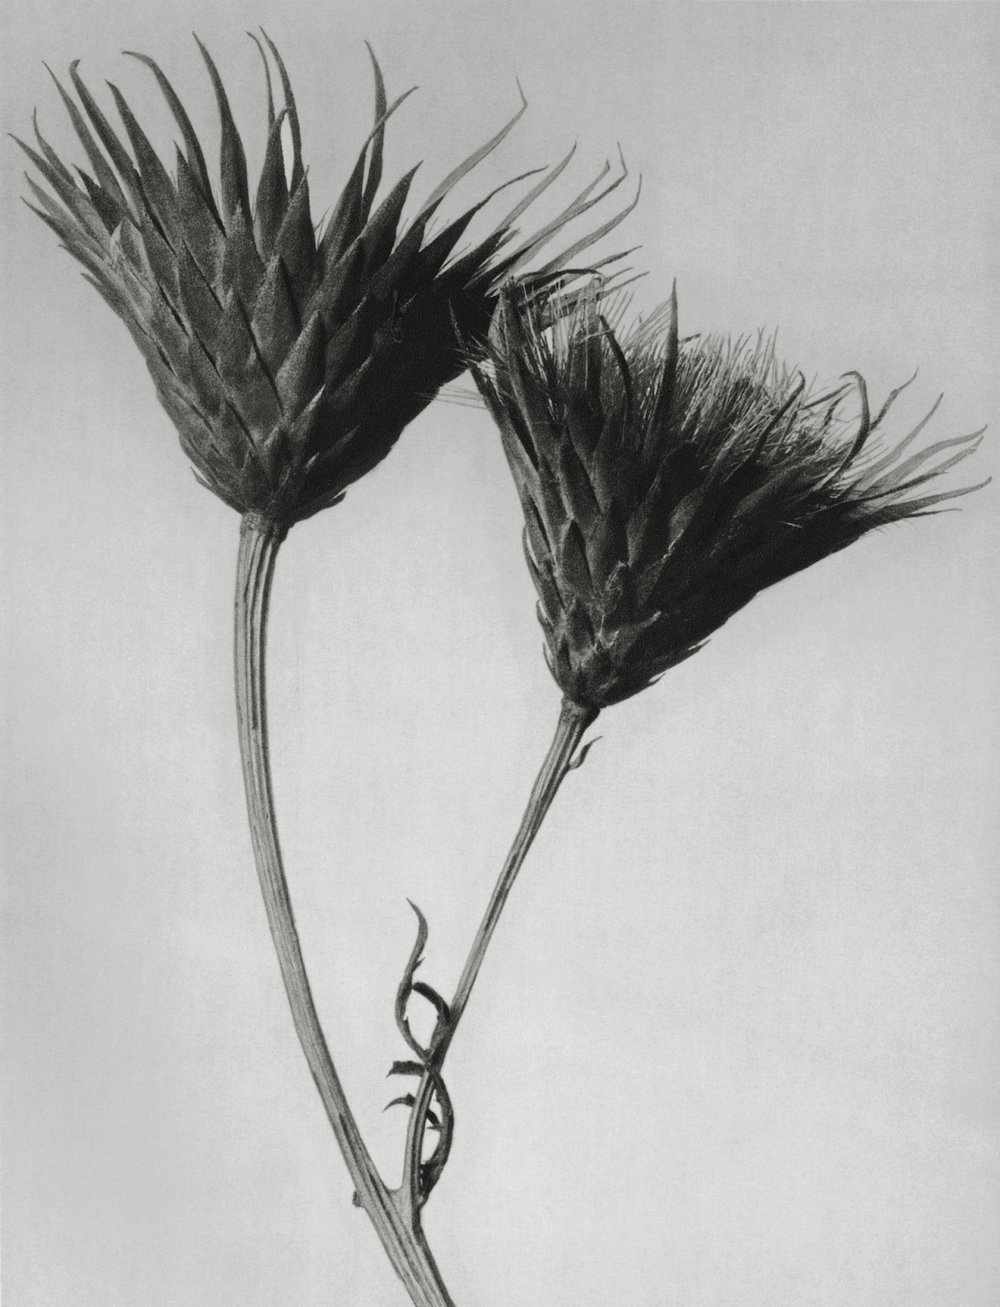 Magnifying the Alien beauty of Plants Karl Blossfeldt.jpg